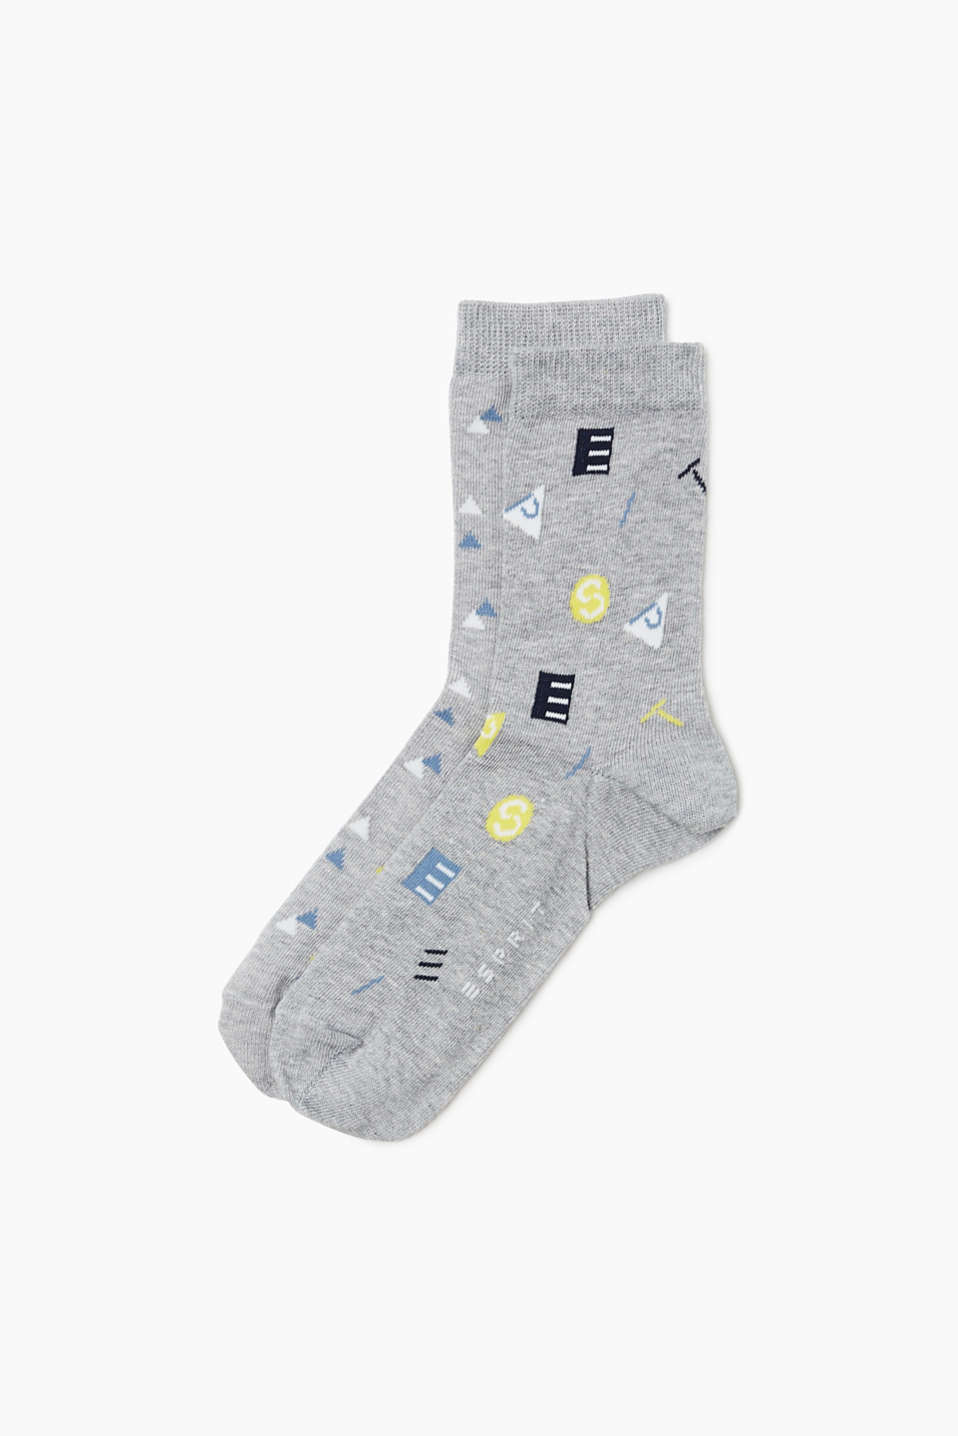 The interwoven geometric shapes and ESPRIT logo make these socks extremely eye-catching!